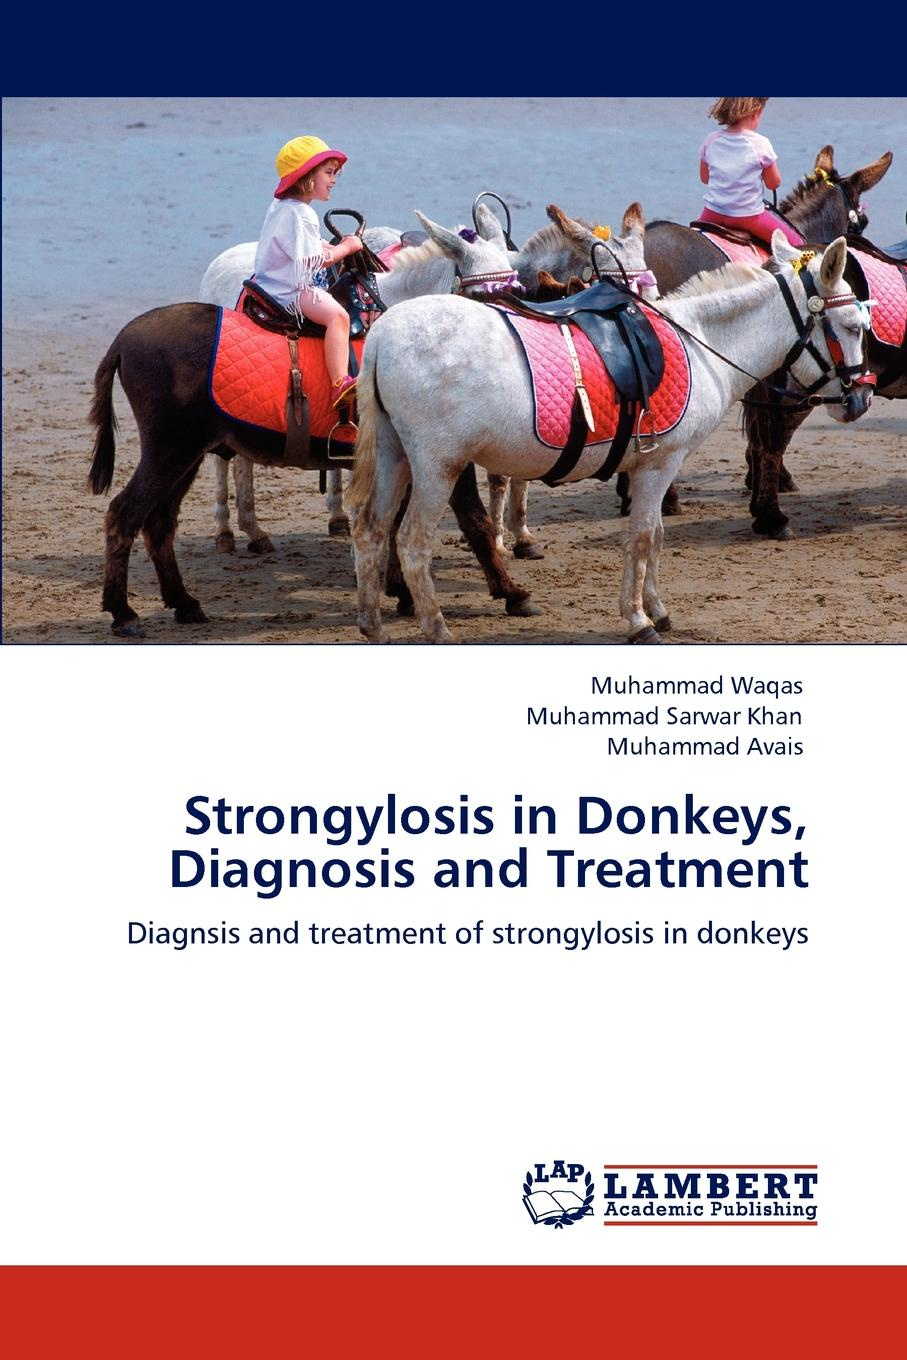 Muhammad Waqas, Muhammad Sarwar Khan, Muhammad Avais Strongylosis in Donkeys, Diagnosis and Treatment michael frayn donkeys years